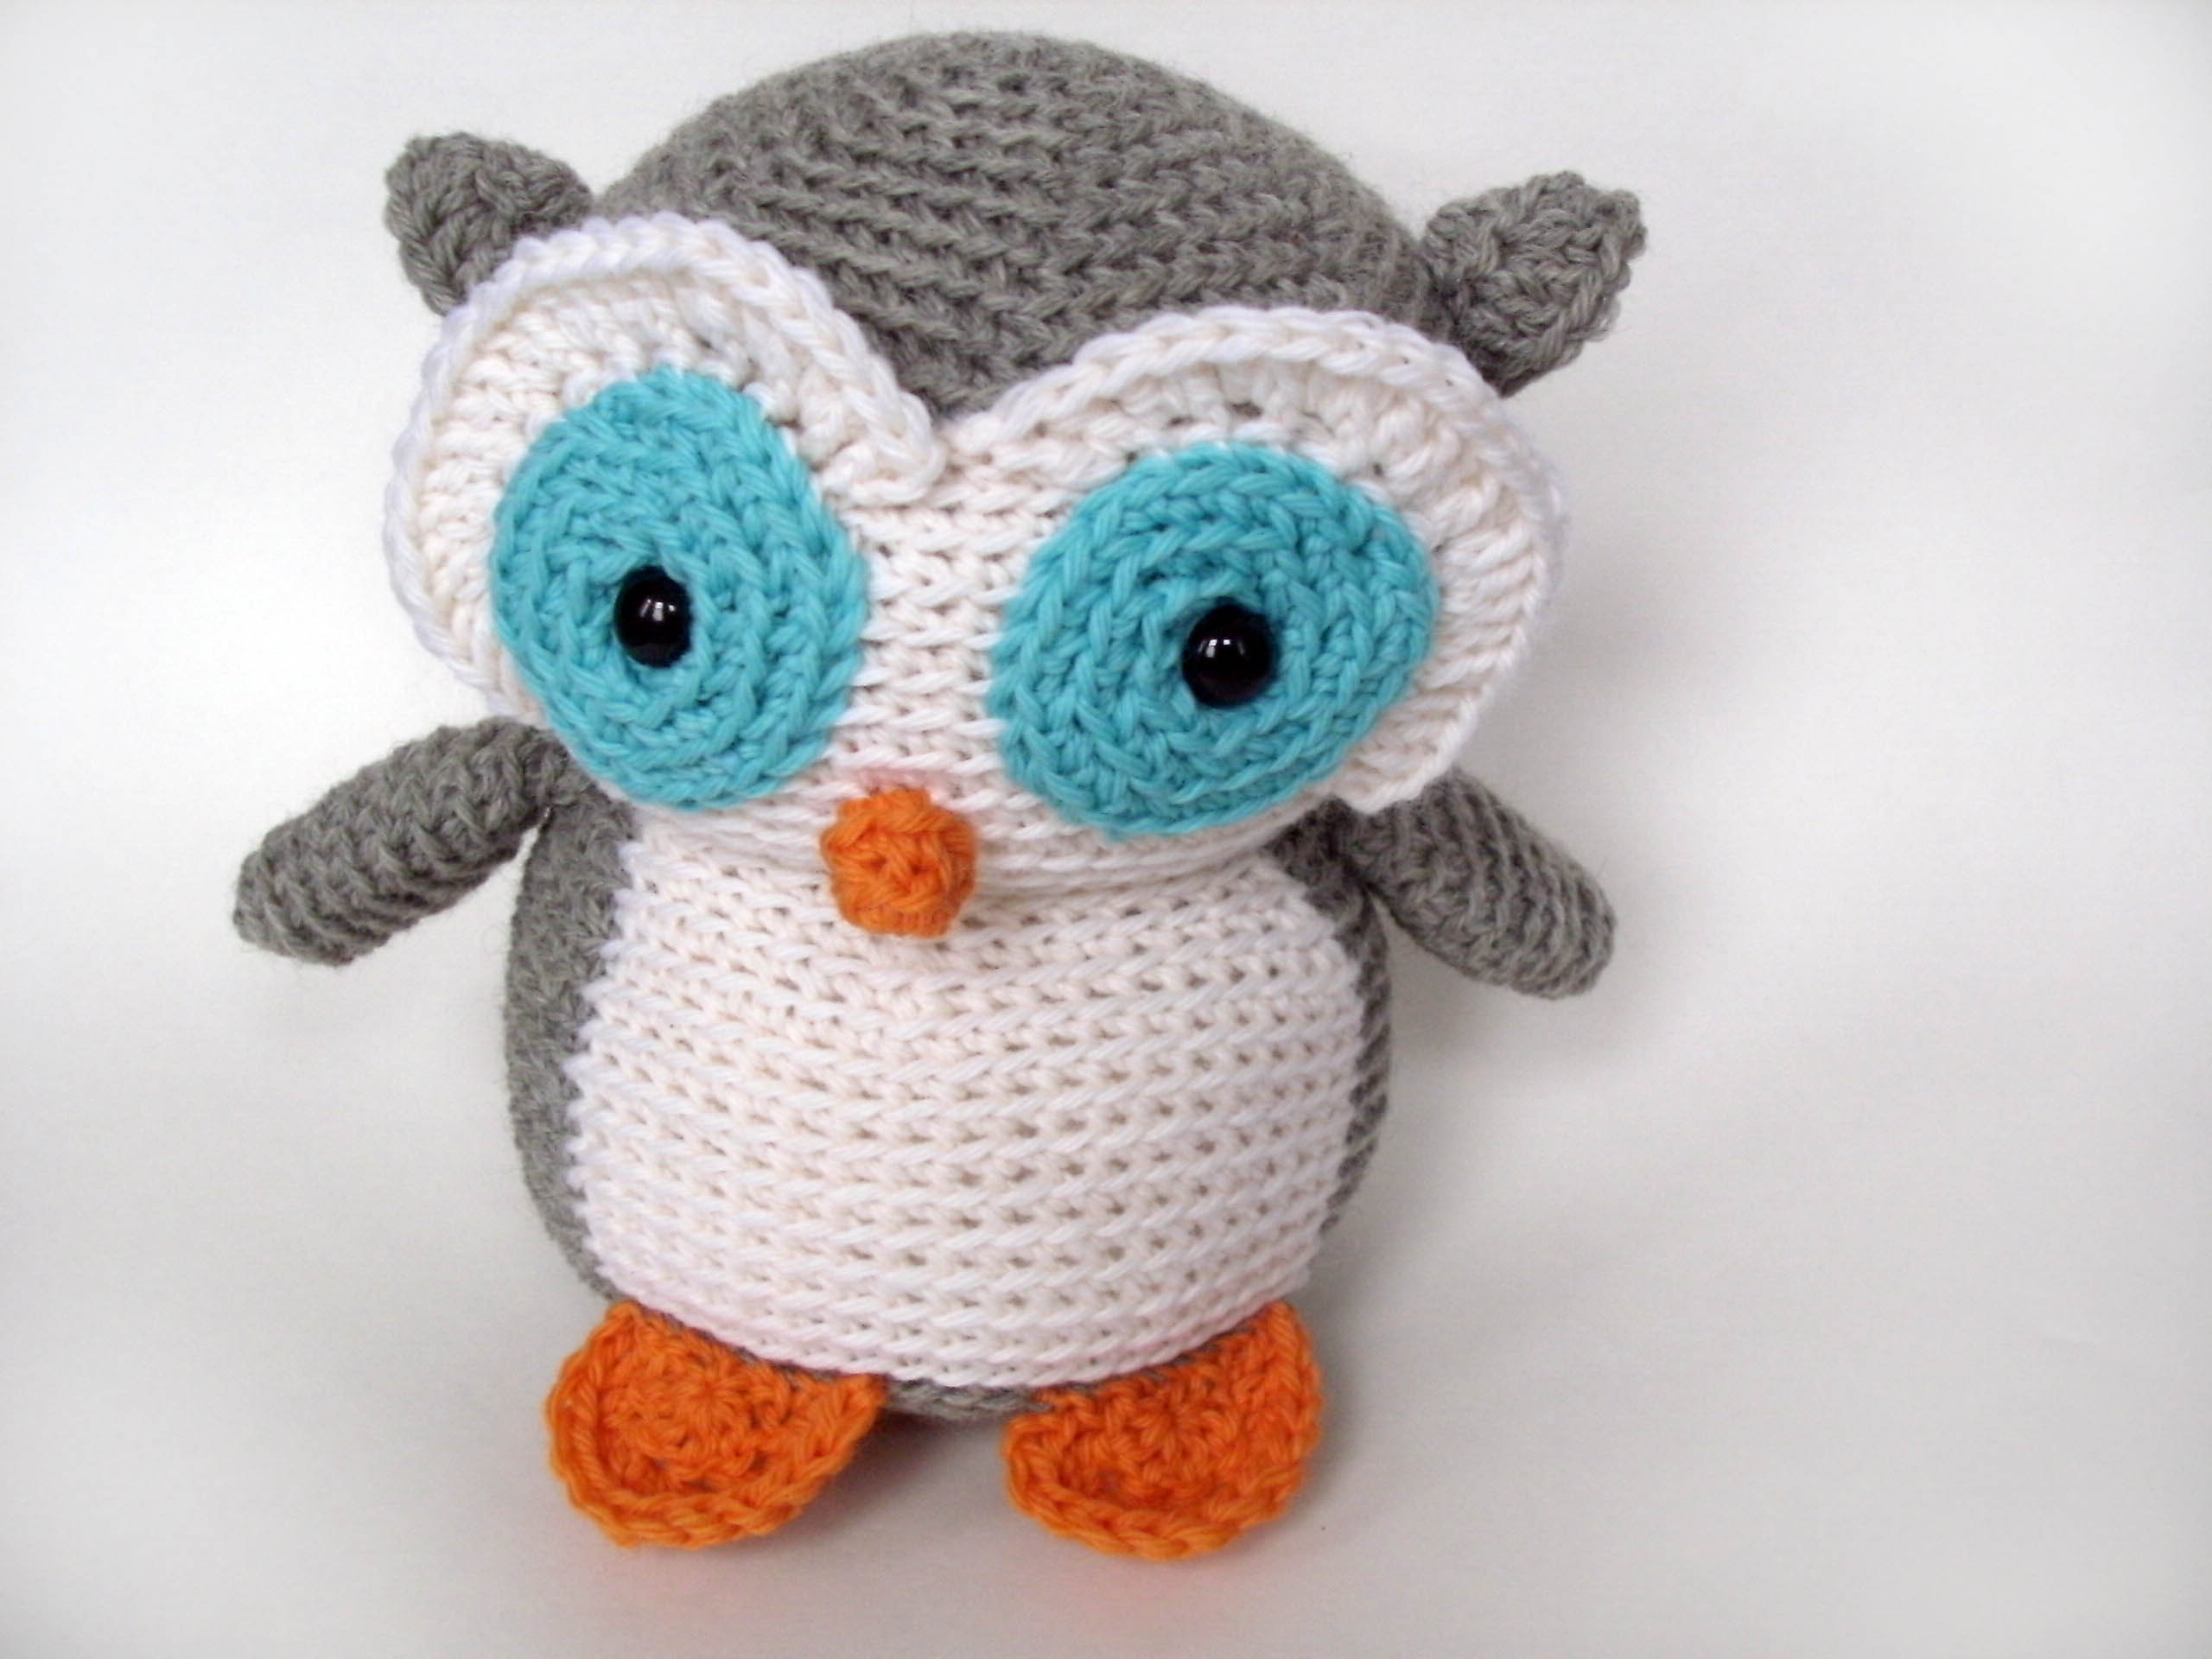 Crochet Stuffed Animals Elegant A Shortcut for Crocheting Stuffed Animals More Quickly Of Incredible 42 Images Crochet Stuffed Animals